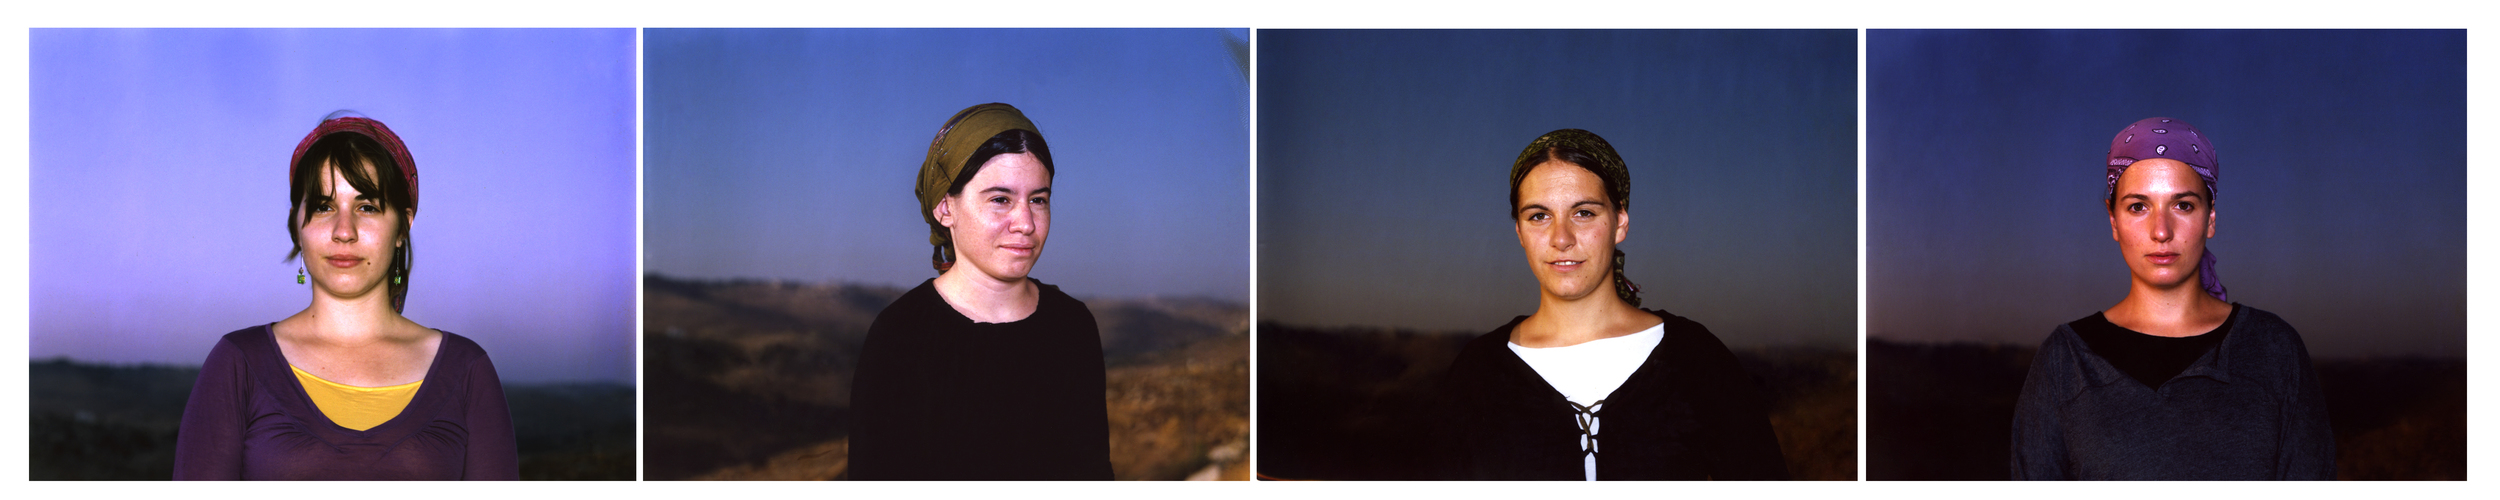 The Otniel Wife (Polaroid Test), 2010